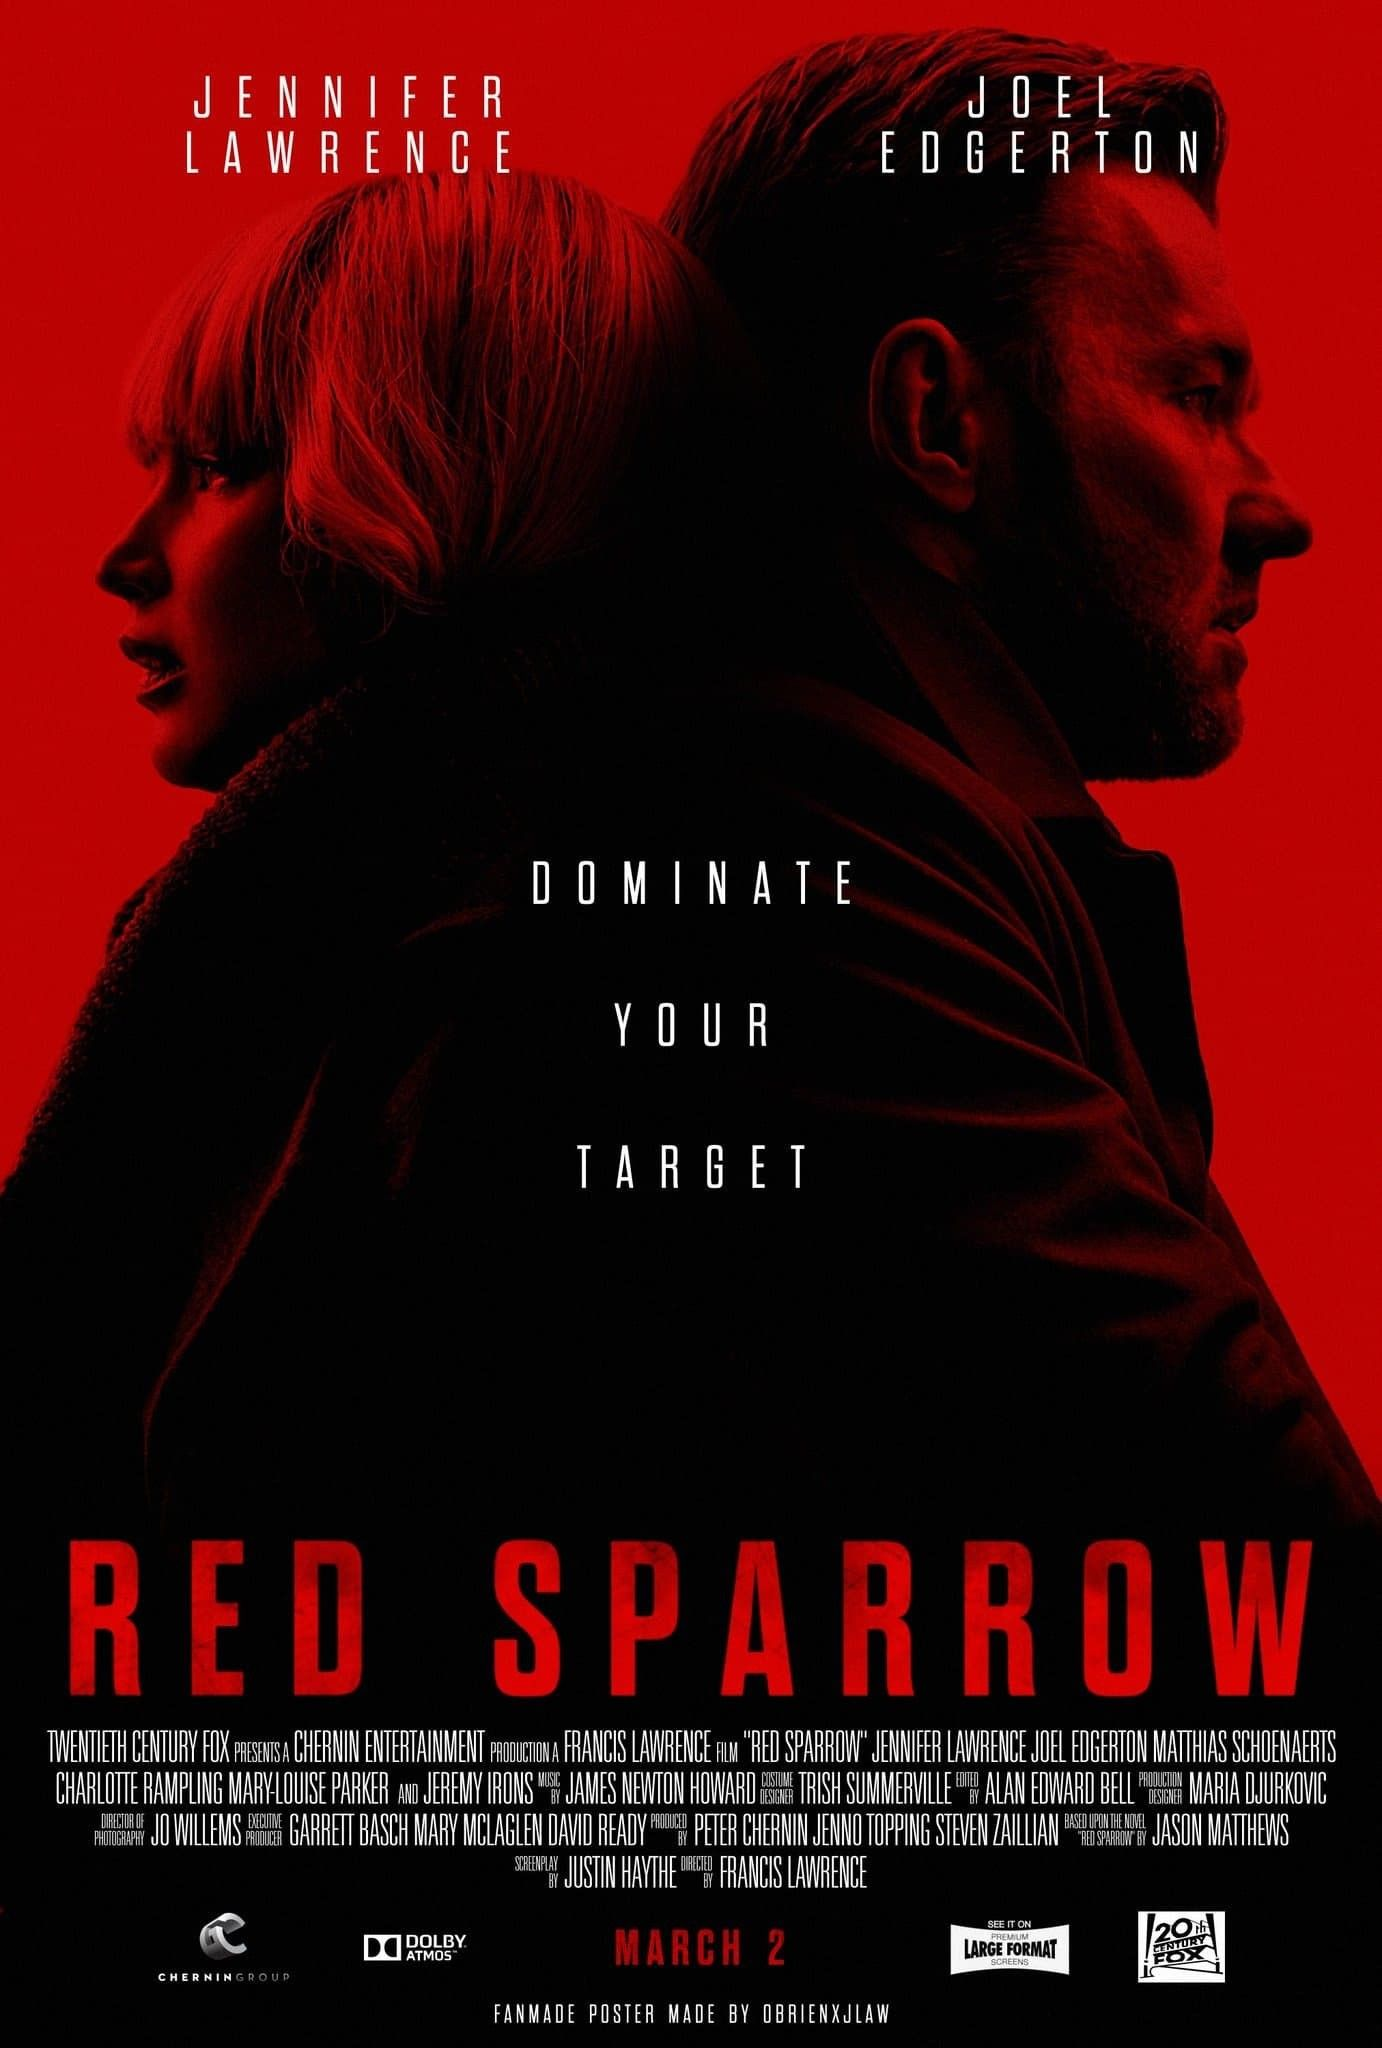 Pin by Ajay Kapoor on Red Sparrow | Red sparrow, Red sparrow movie, Full  movies online free